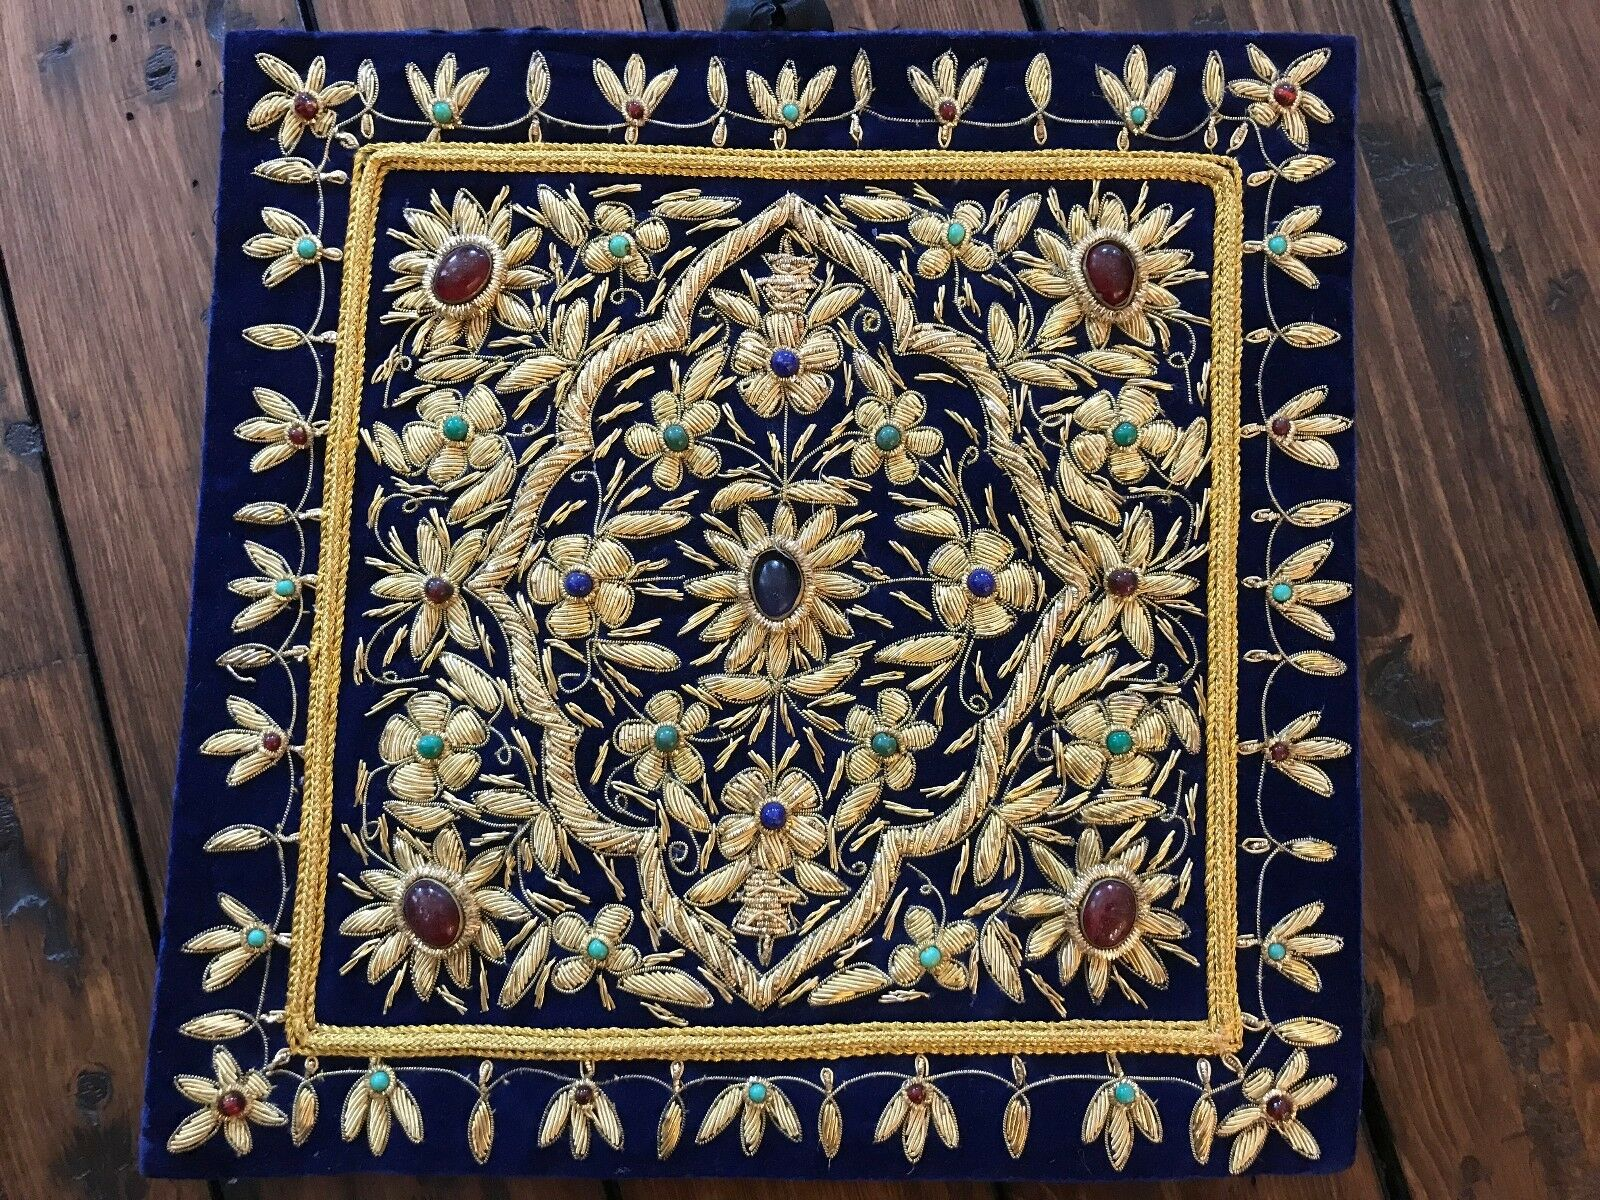 Exotic Handmade Jeweled Carpet Rug Wall Hanging Art Kashmir Zari A Beauty USA